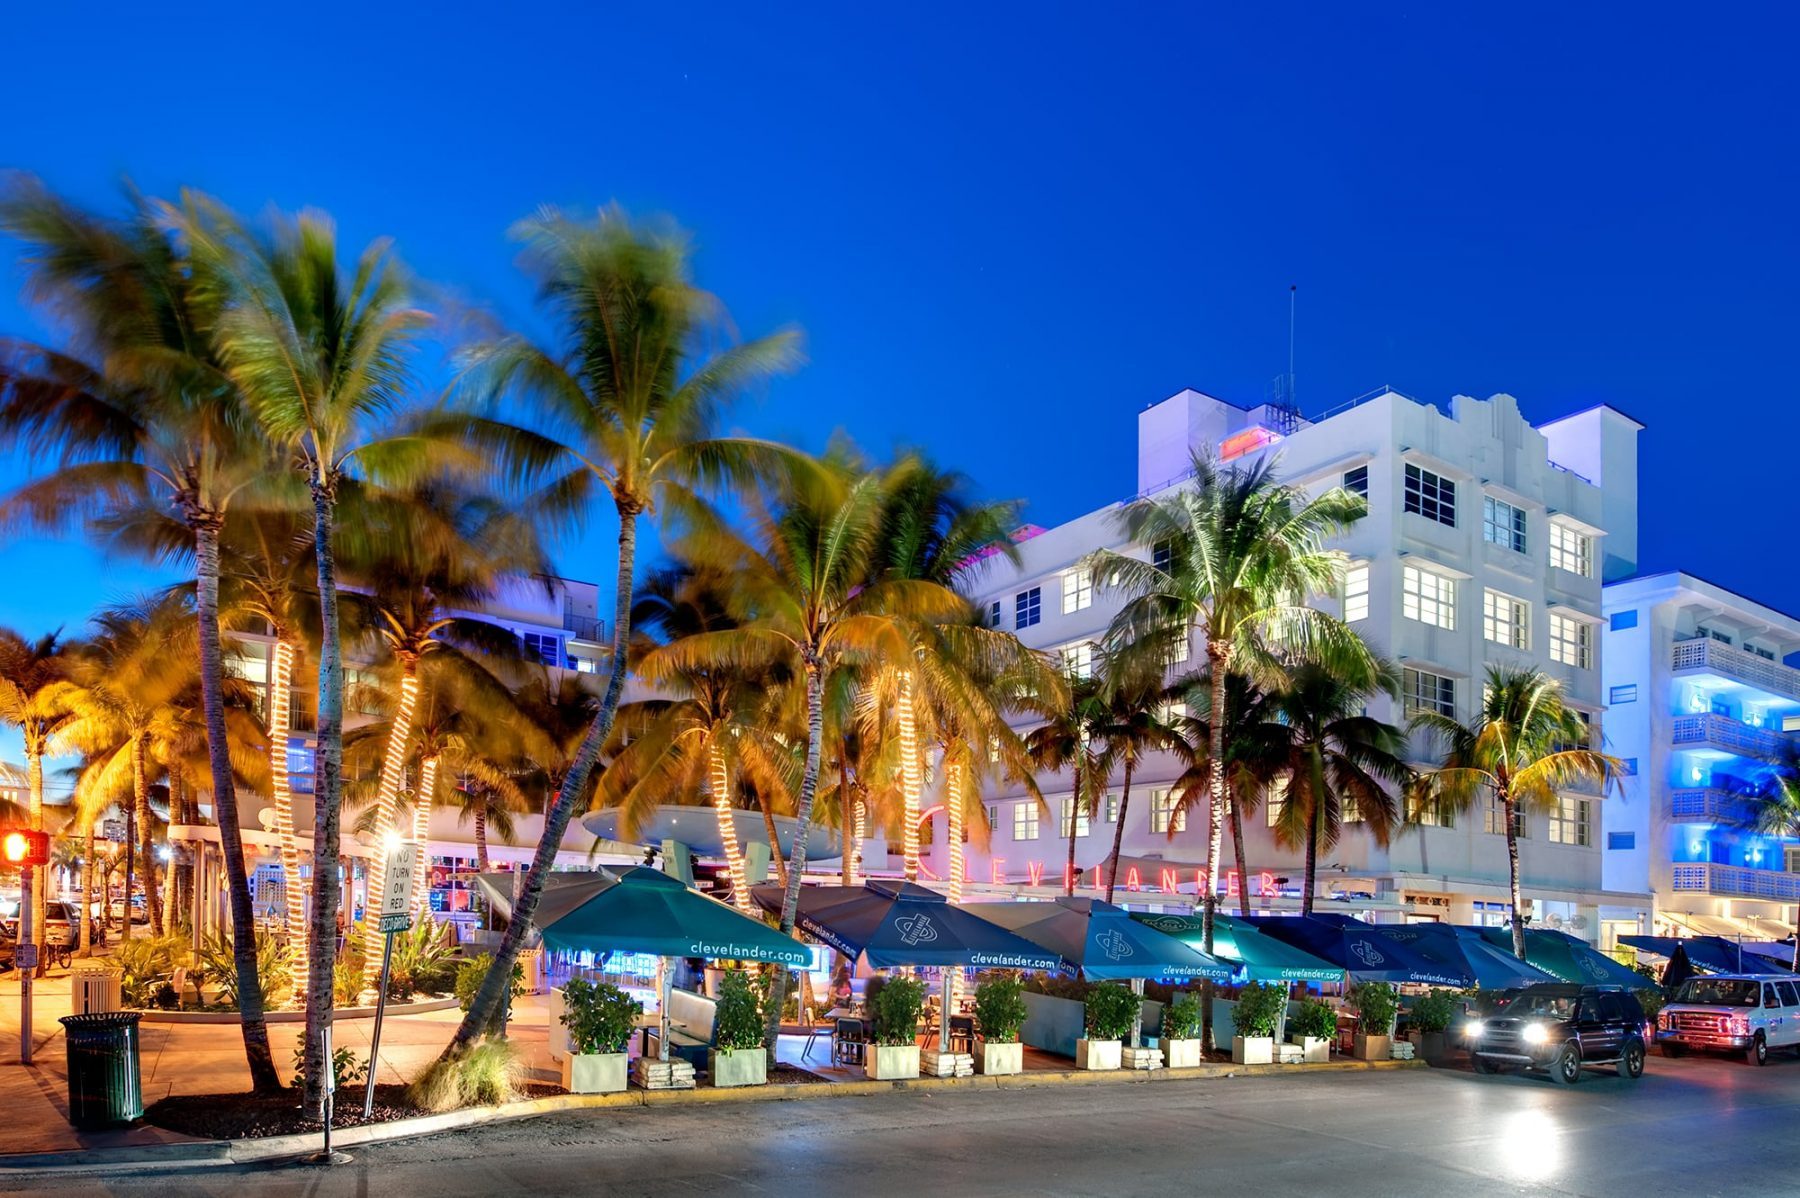 south beach que faire a south beach miami beach ou sortir a miami beach boire un verre clevelander blog miami off road